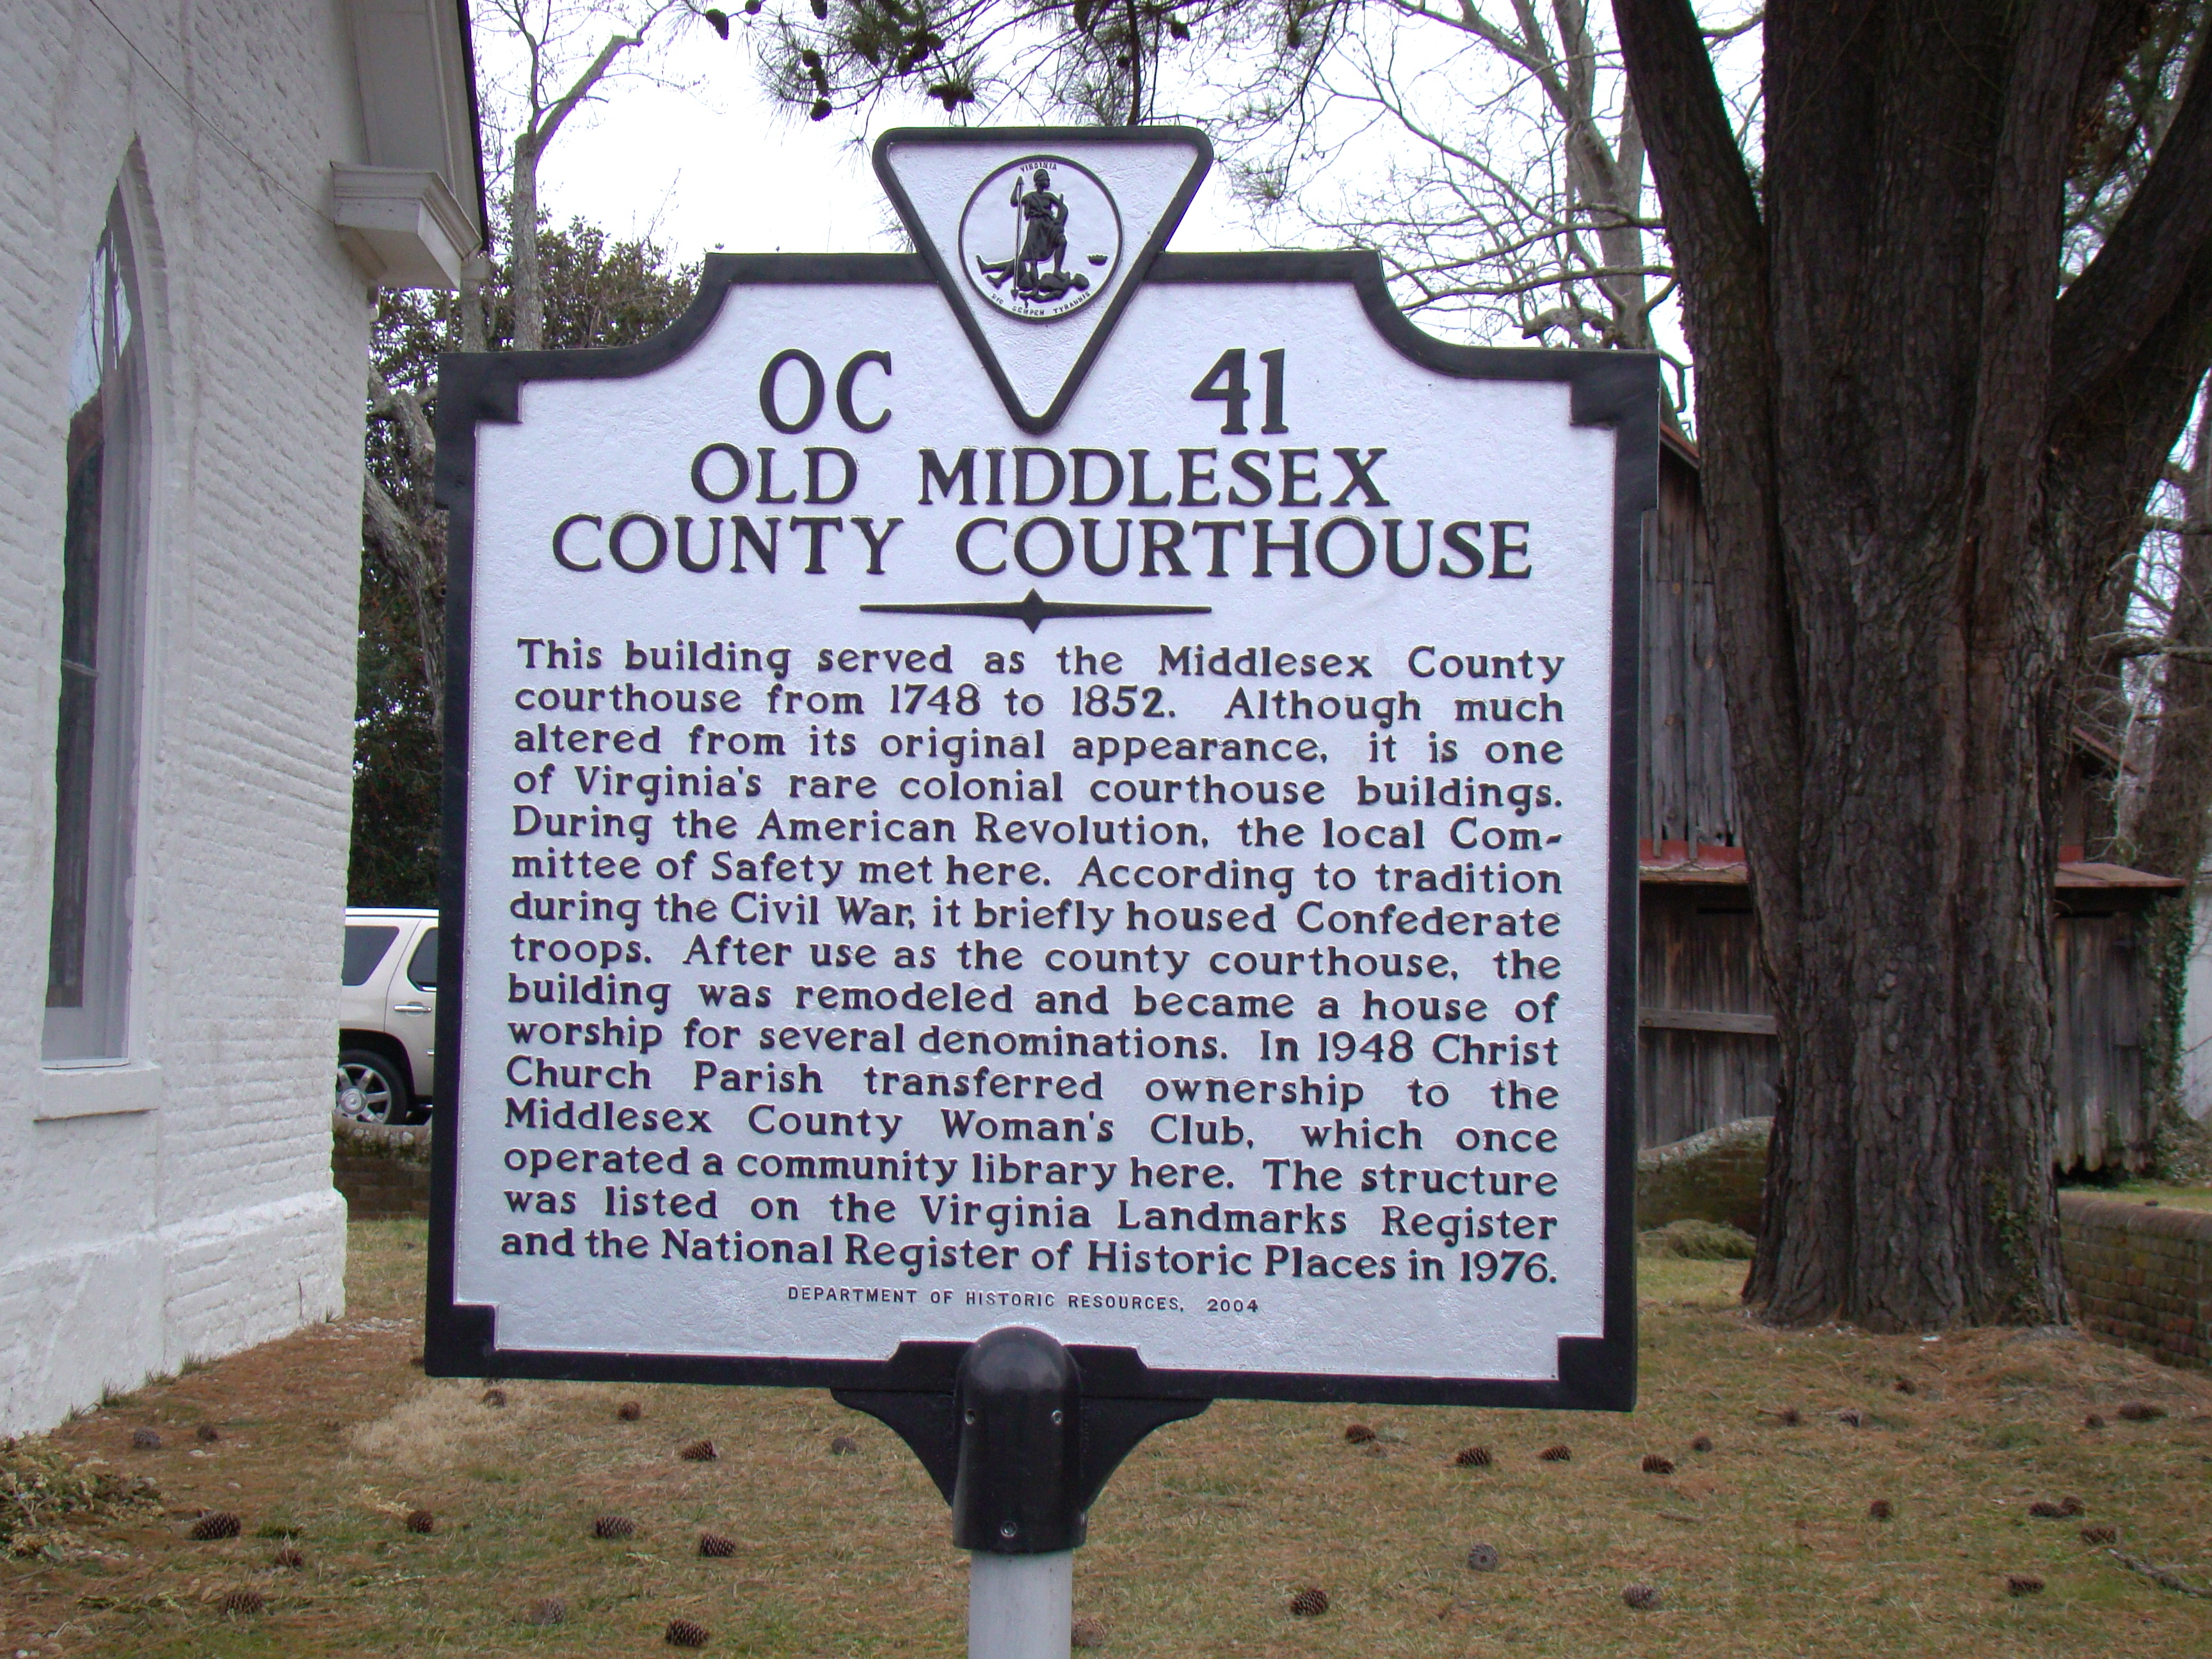 Old Middlesex County Courthouse Marker